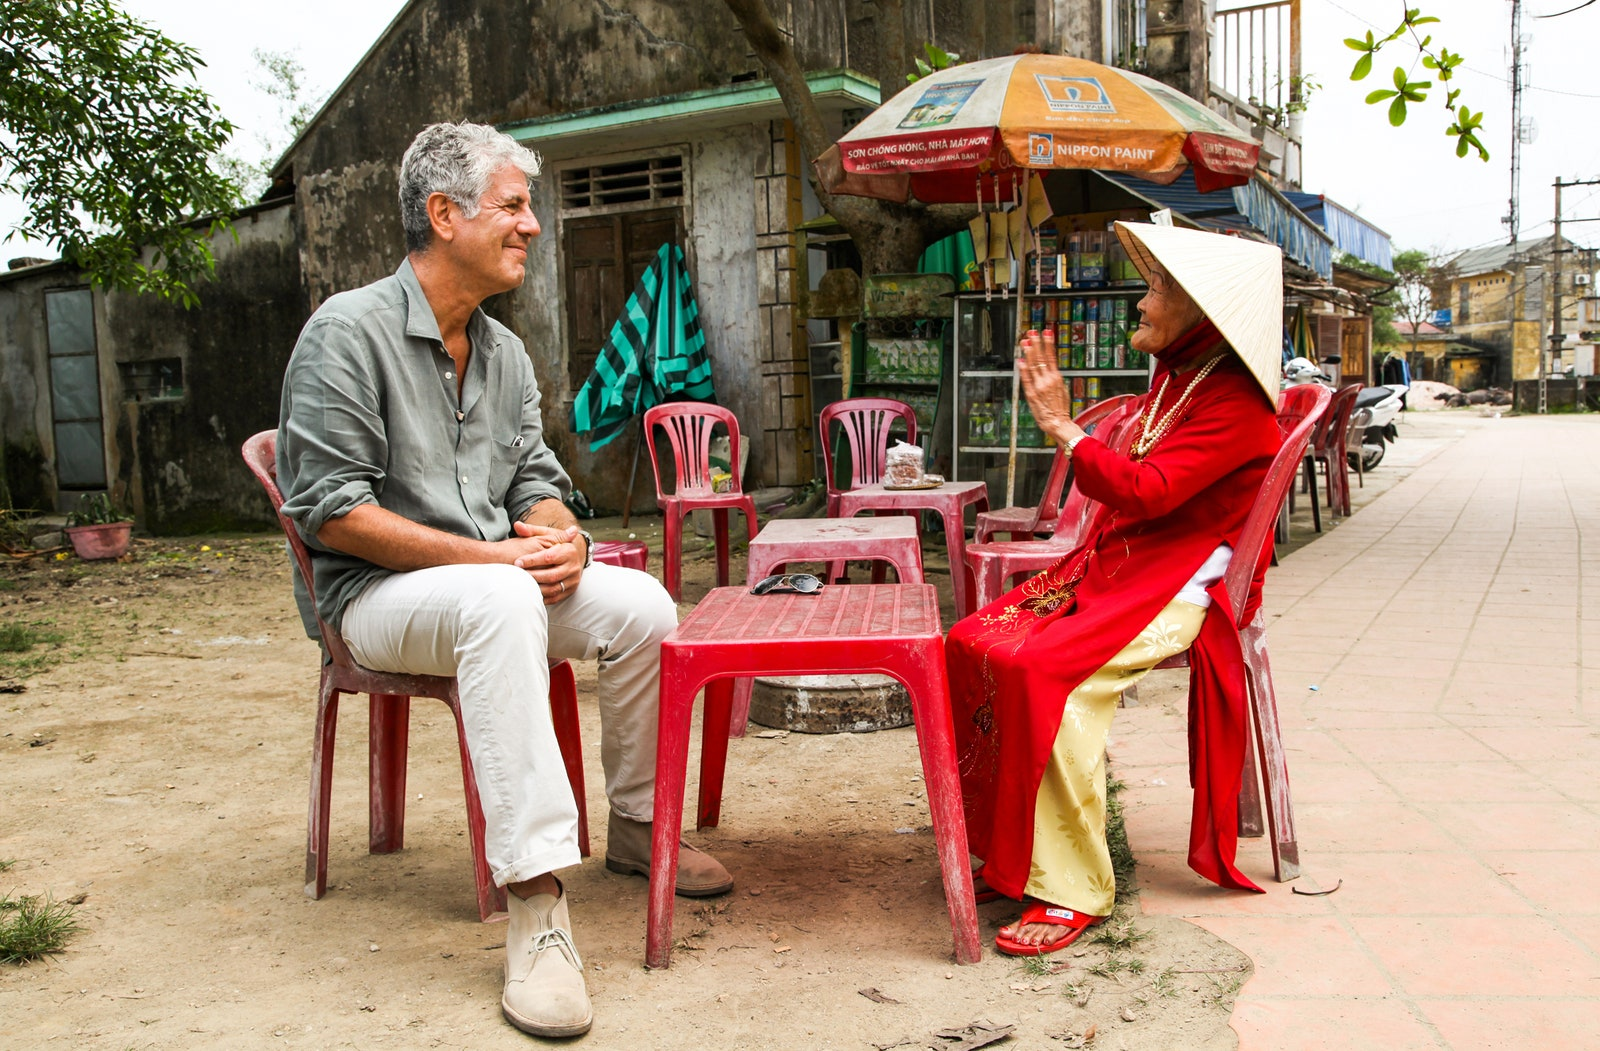 How Anthony Bourdain lives in my head